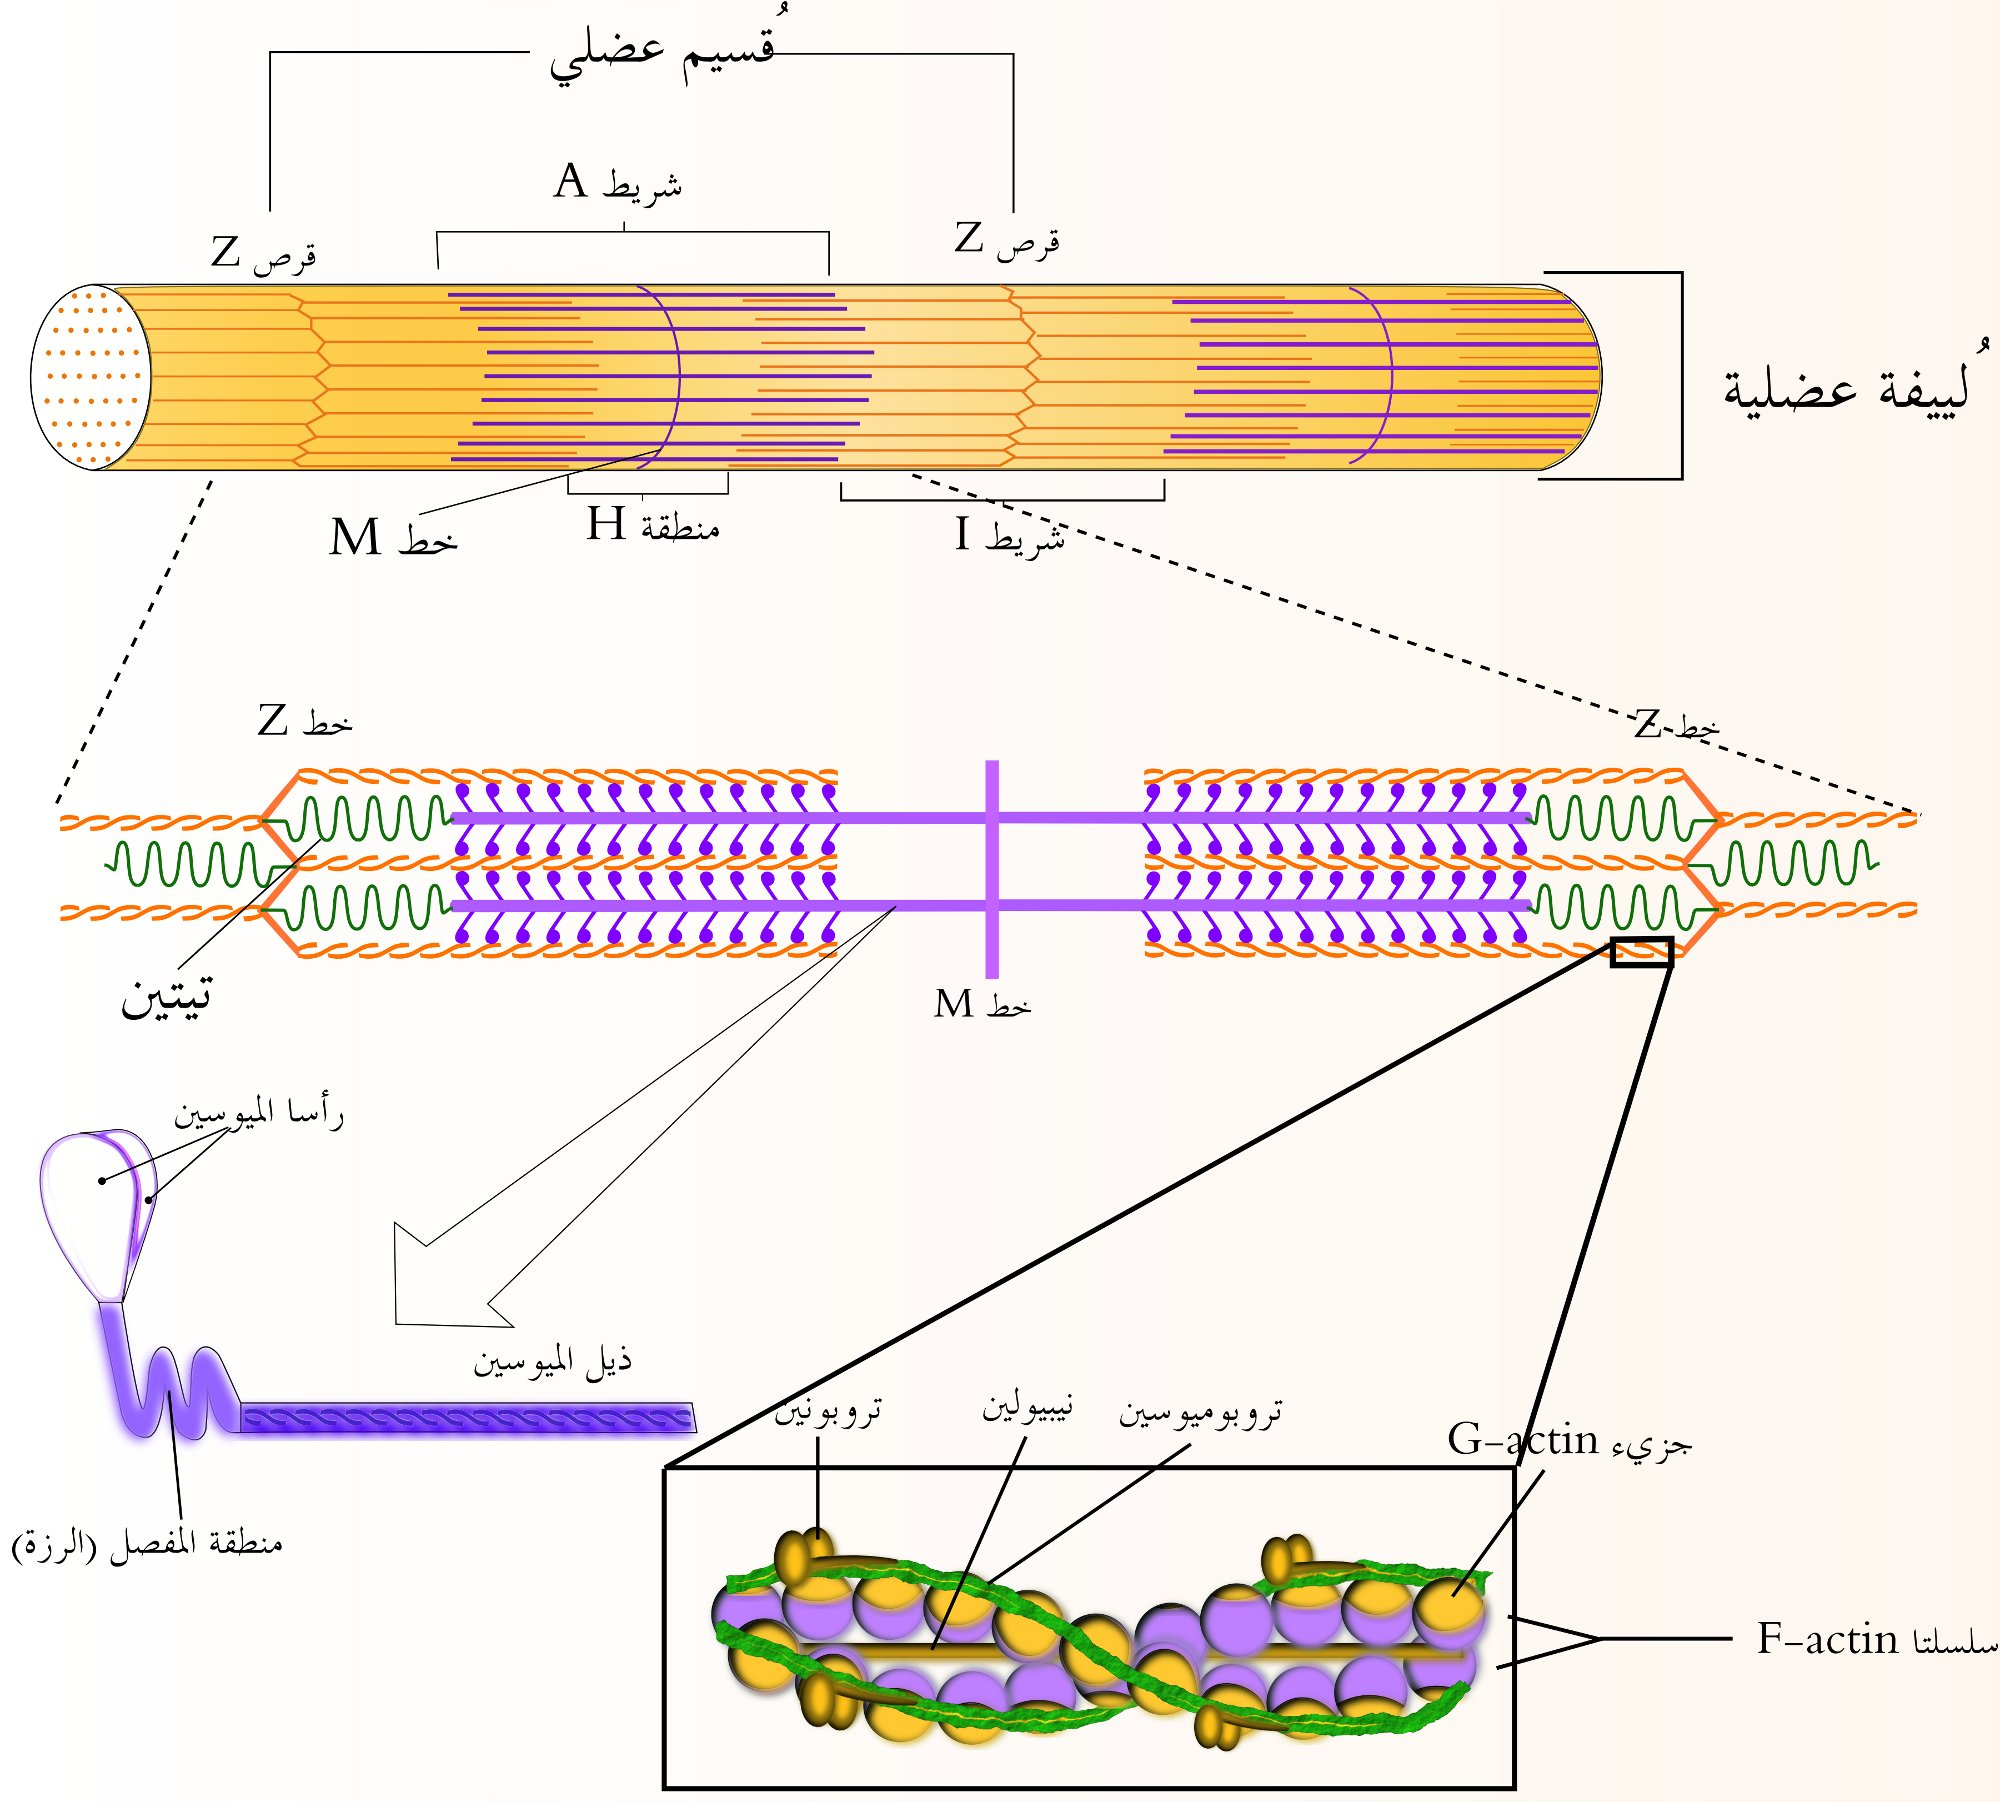 file:muscle fiber-extra structure - wikimedia commons